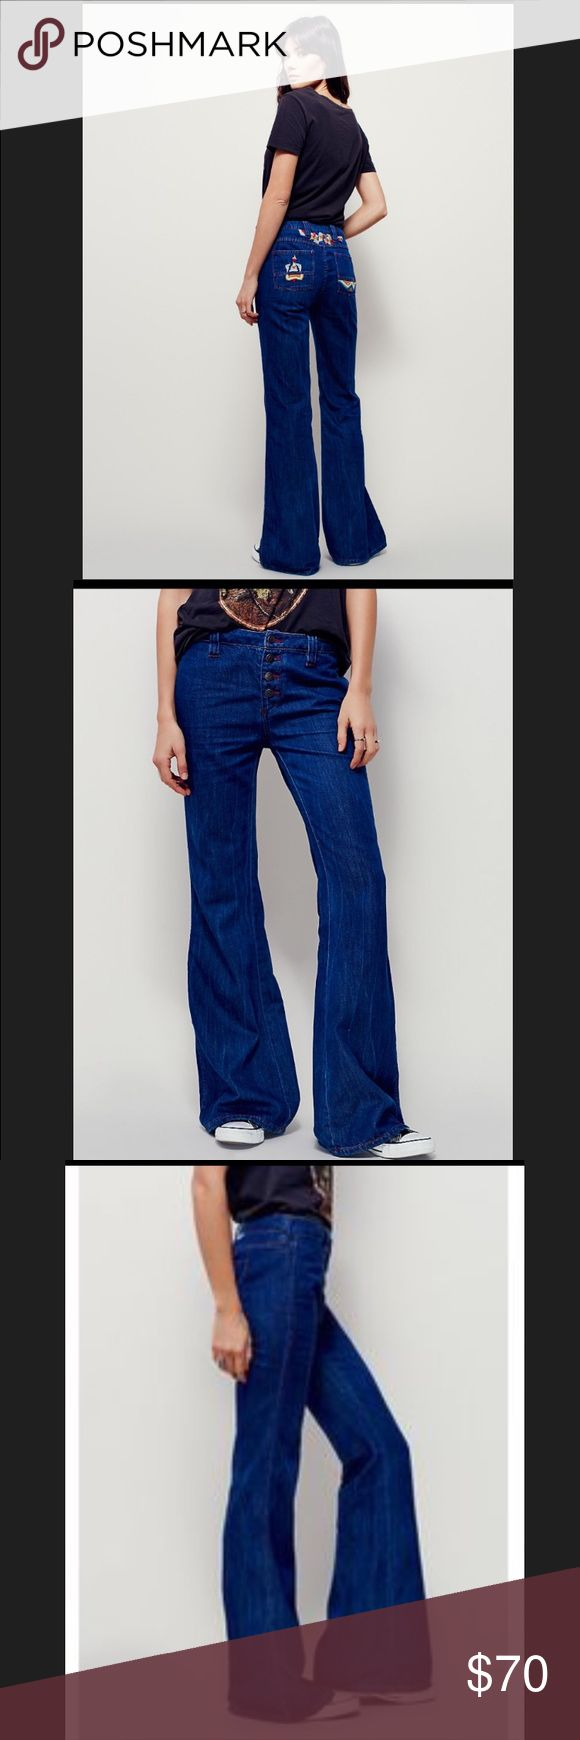 **FREE PEOPLE** HEARTBREAKER FLARE **FREE PEOPLE** size 24•Vintage-inspired mid-rise denim flares, featuring embroidery along the back pockets, and contrast seaming..relaxed fit through the thigh, and button fly..                                                      *ALSO I.S.O. (desperate search) these exact pants in a size 30, or 31...**                              also..free people sale tag is missing, and inside name has a line through it to apparently discourage re-sale from third…